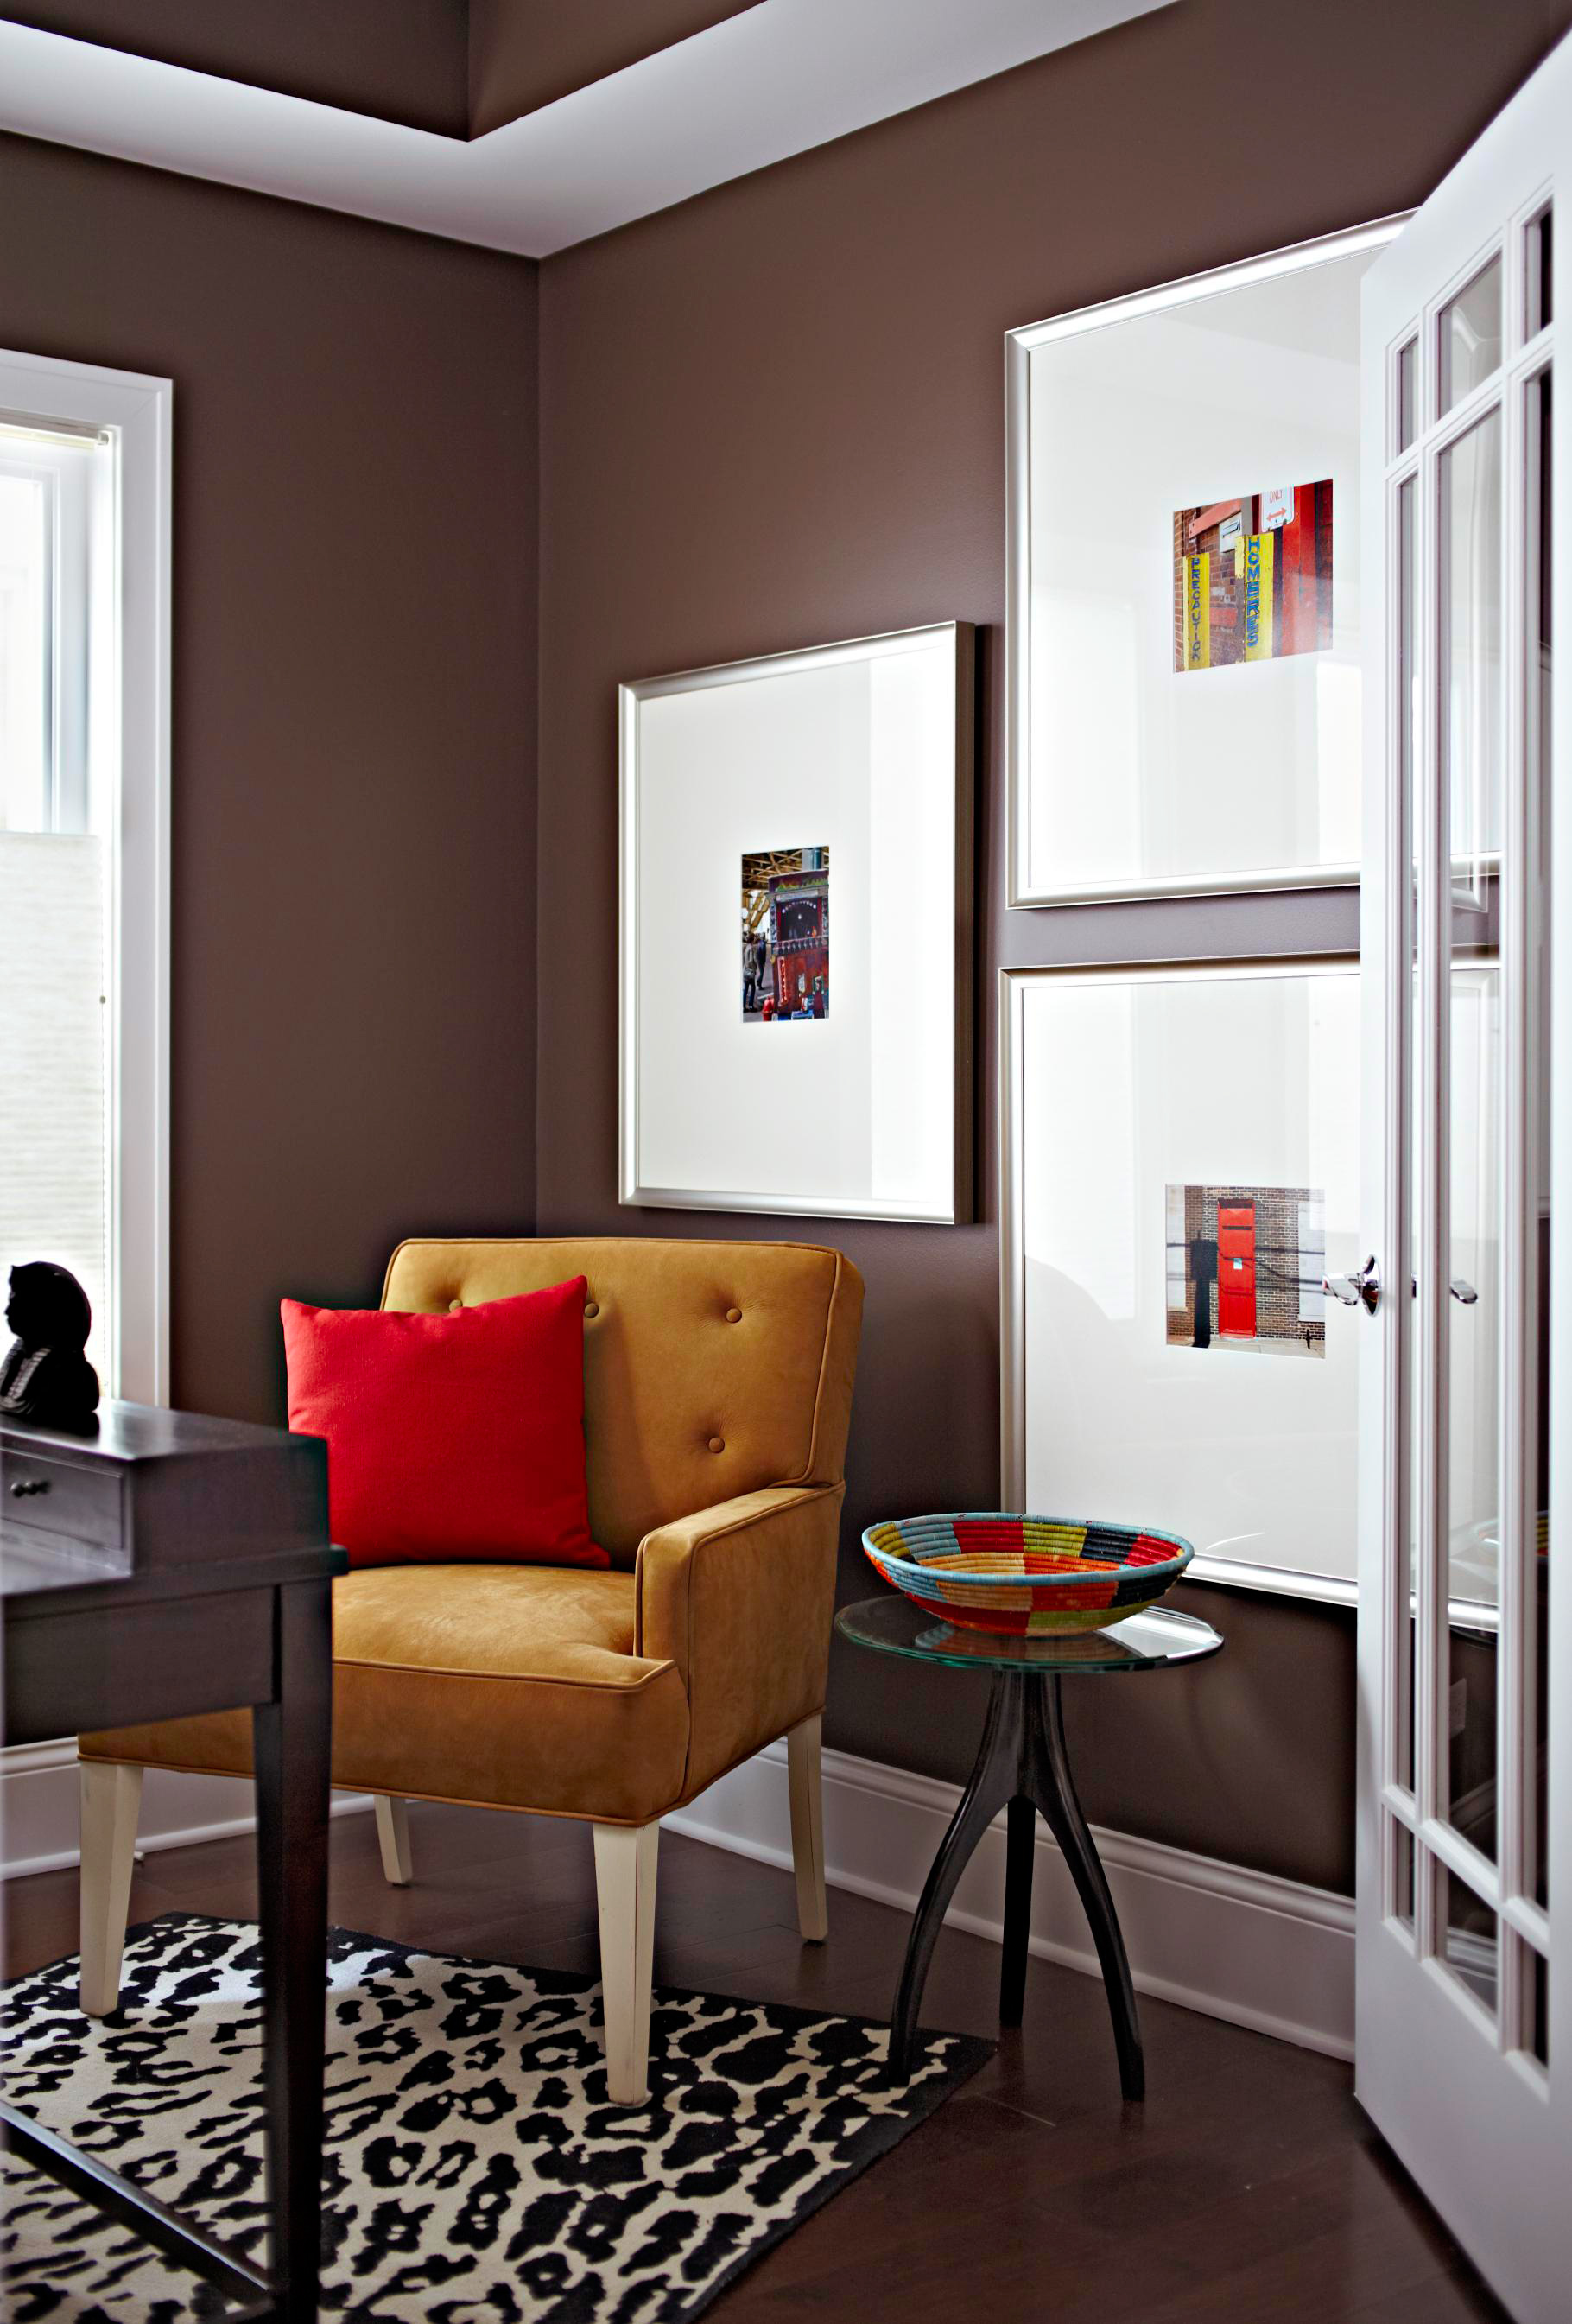 Spice up small spaces